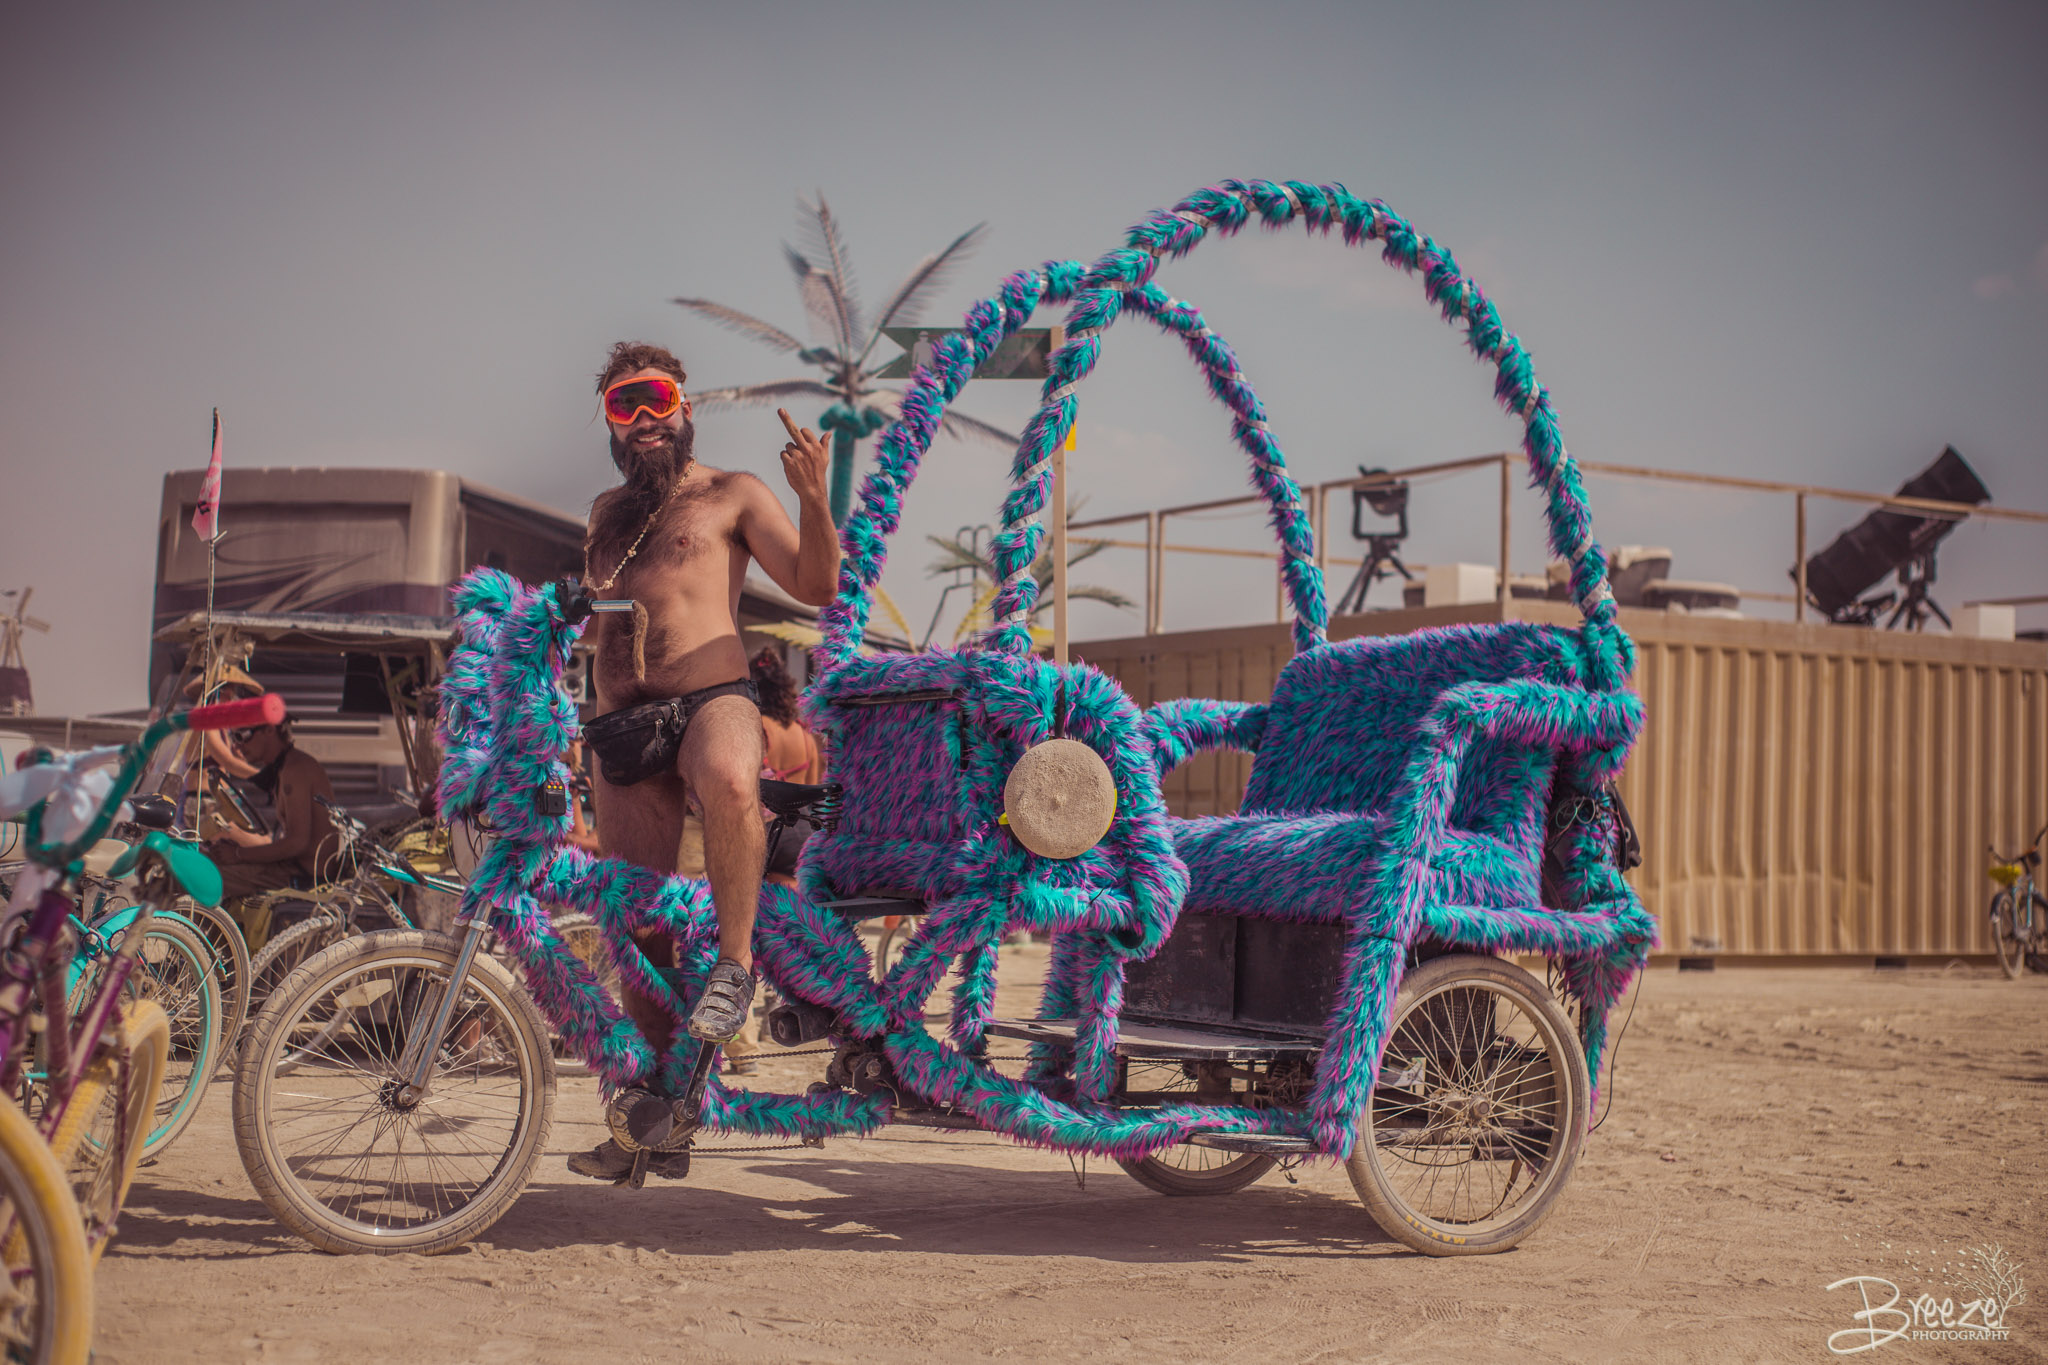 Brie'Ana Breeze Photography & Media - Burning Man 2018-3795.jpg